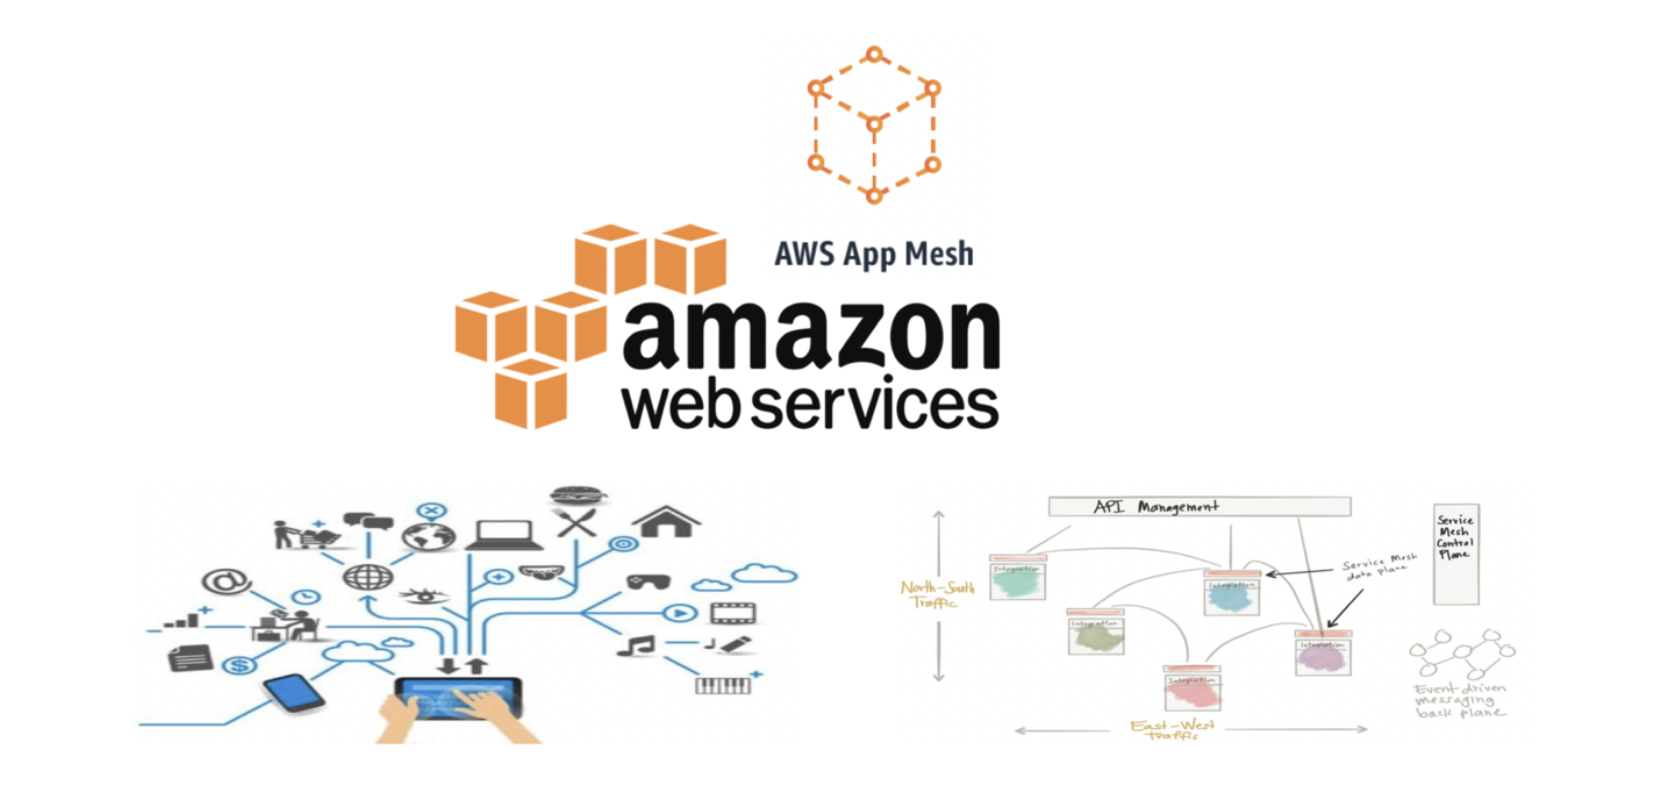 AWS App Mesh — Service Mesh for Microservices Running on AWS